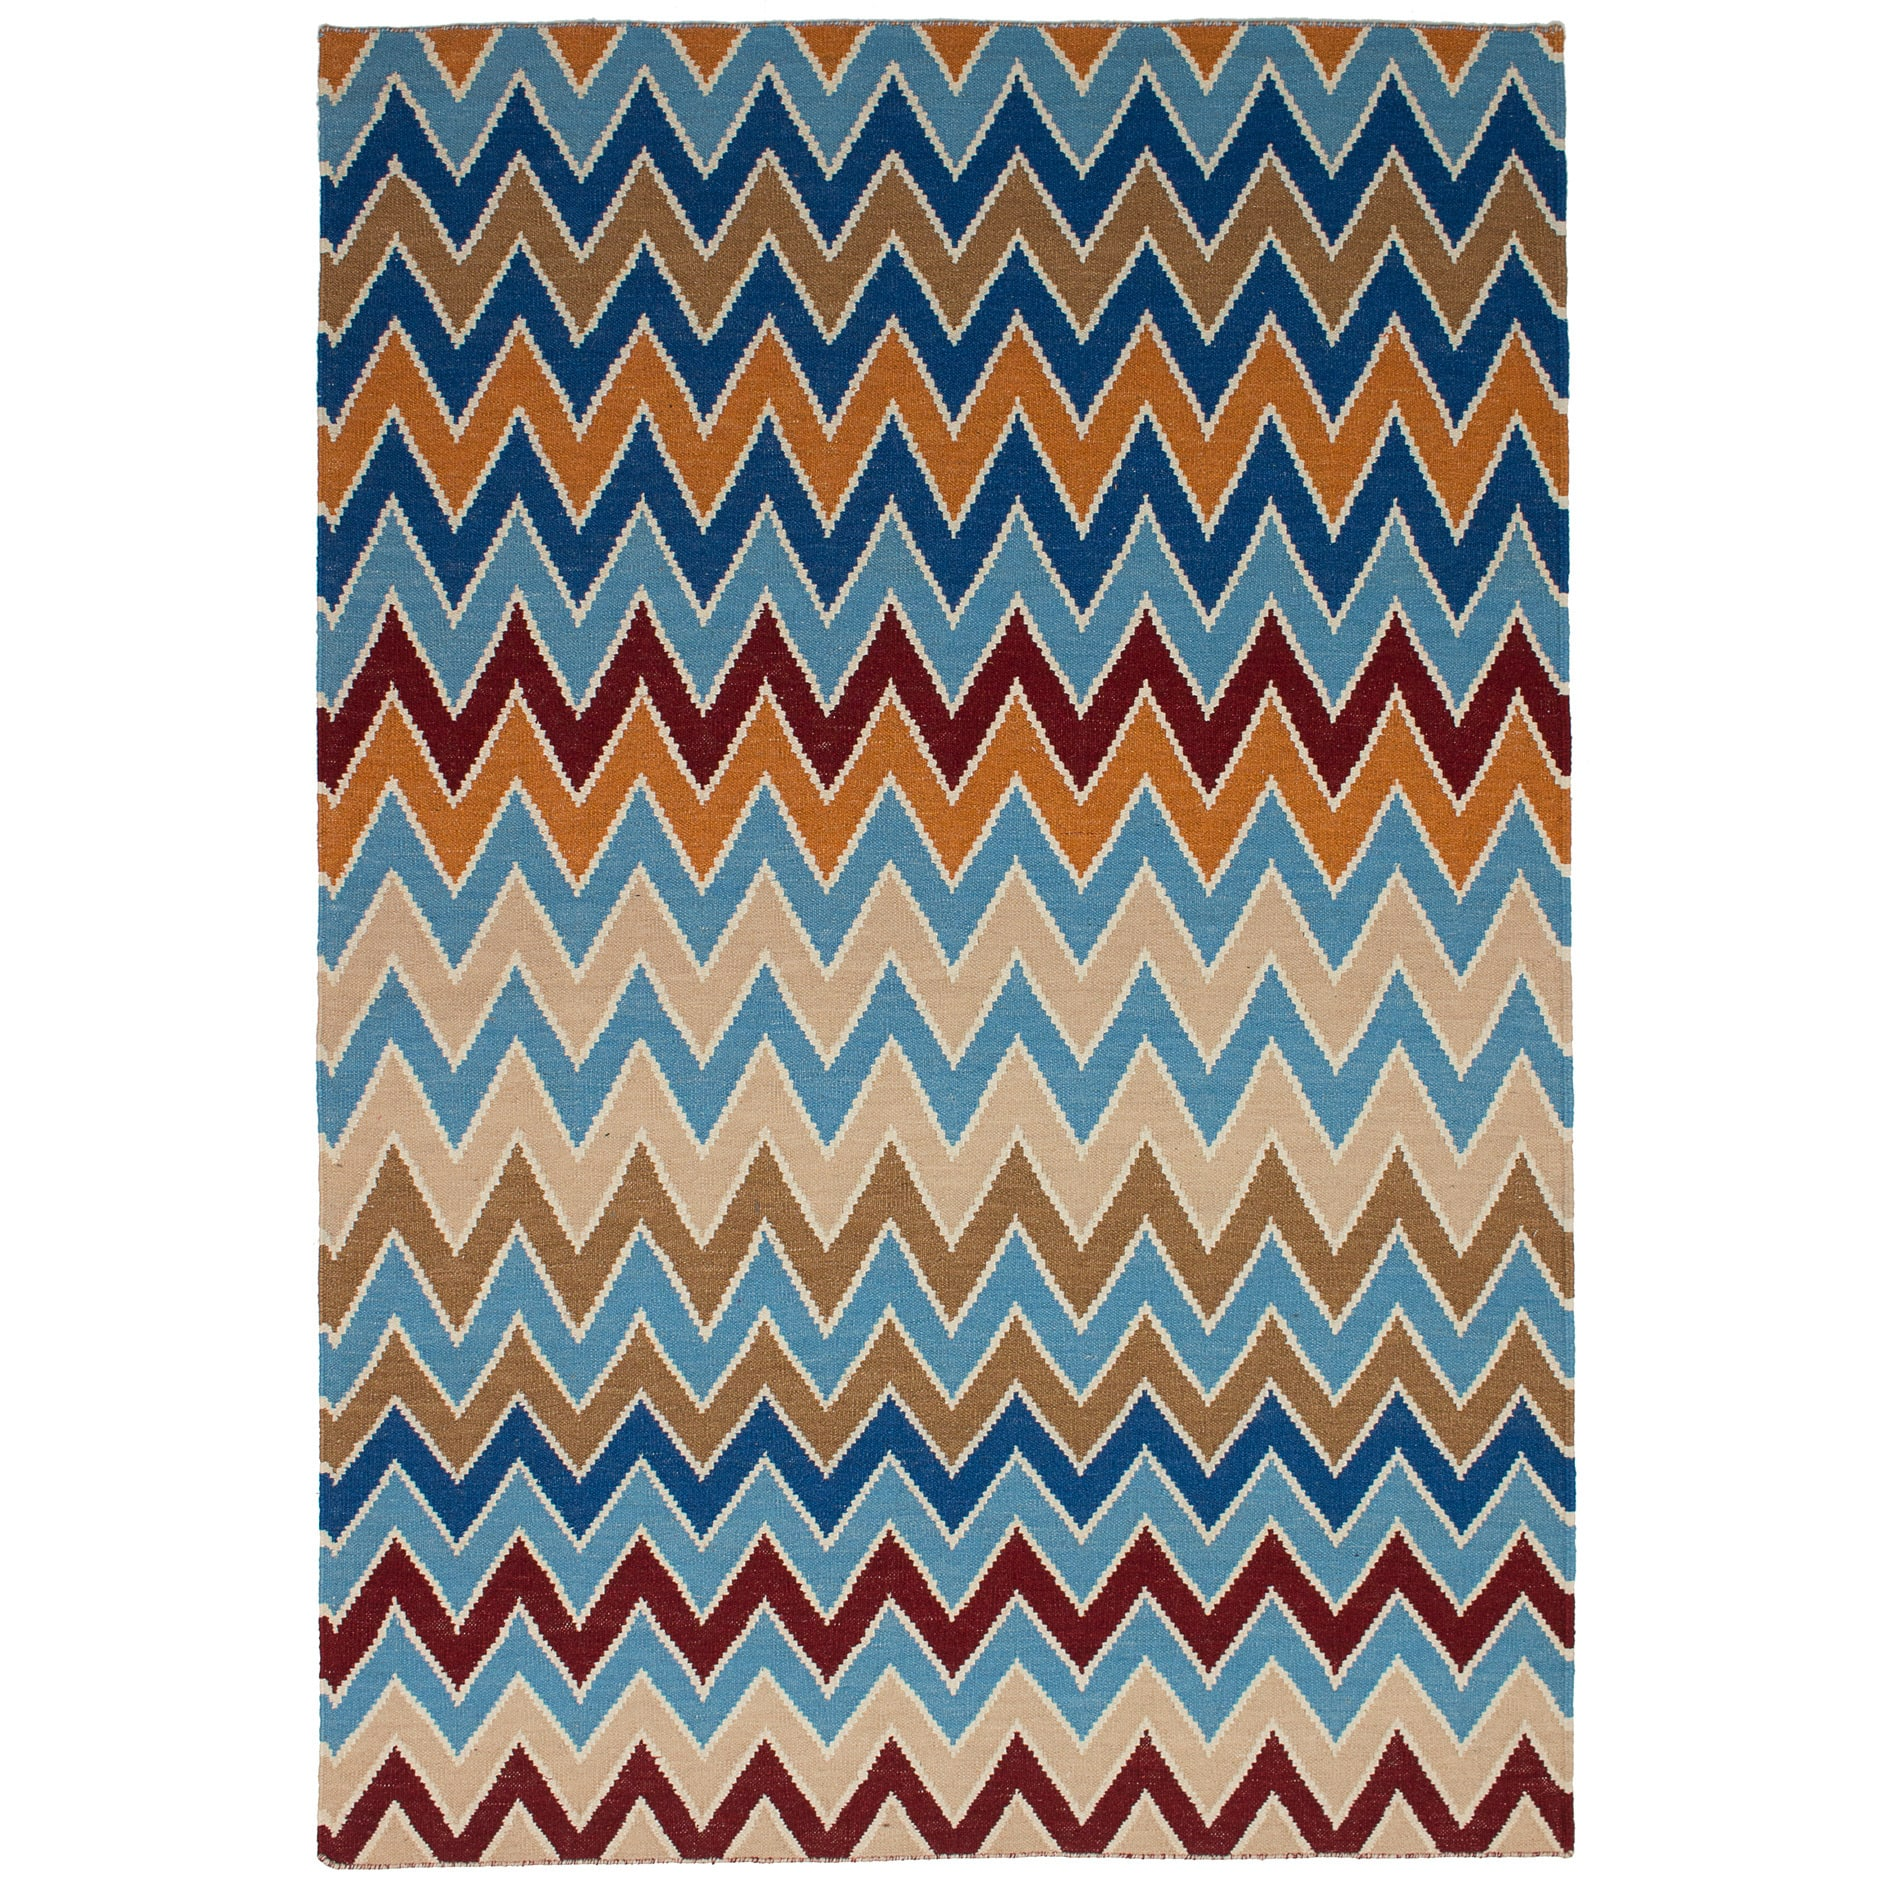 Unique One Of A Kind Area Rugs For Less Overstock